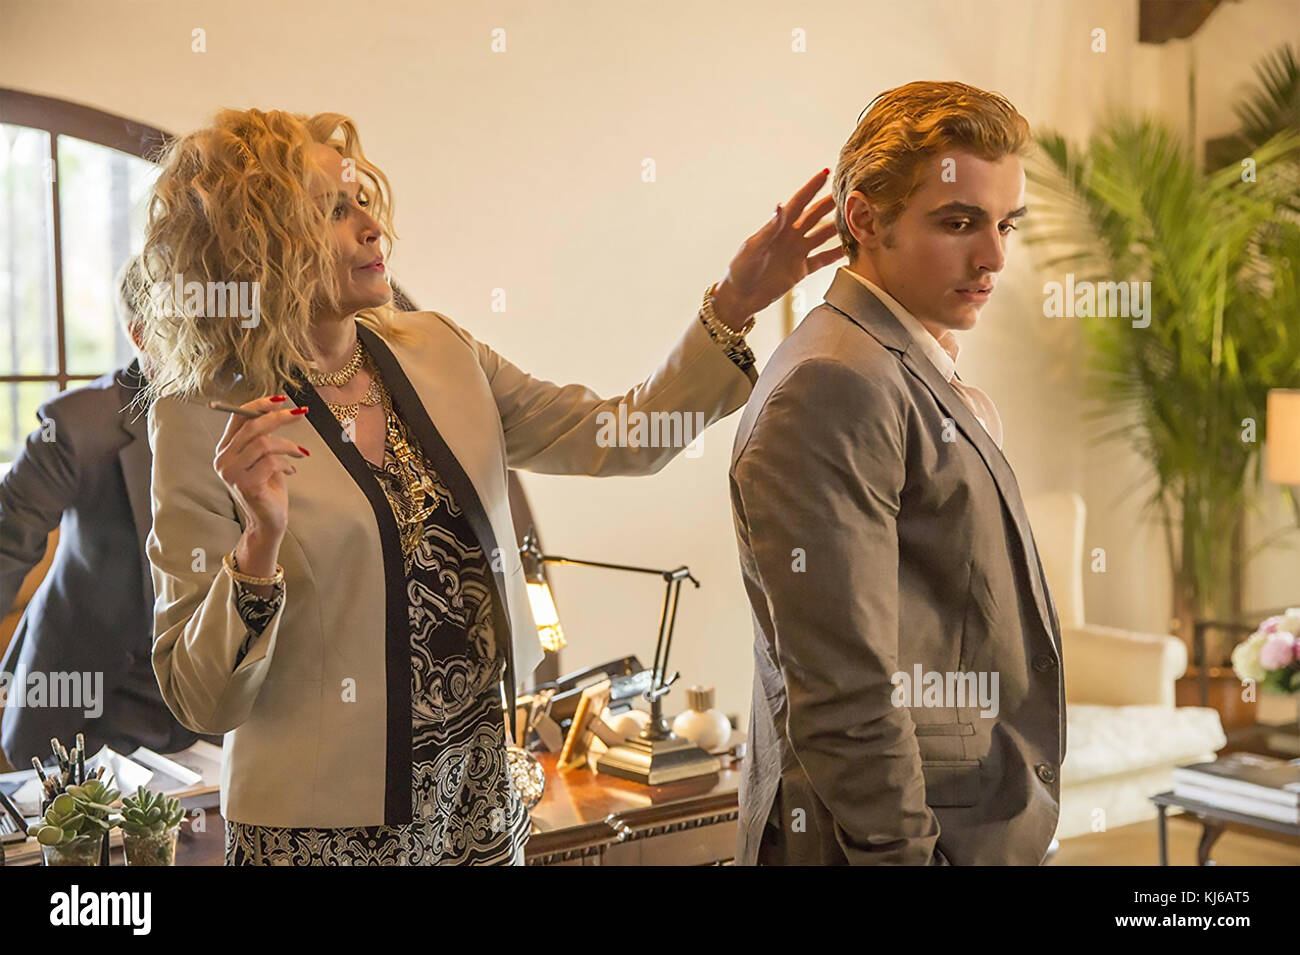 THE DISASTER ARTIST 2017 New Line Cinema film with Sharon Stone and Dave Franco Stock Photo